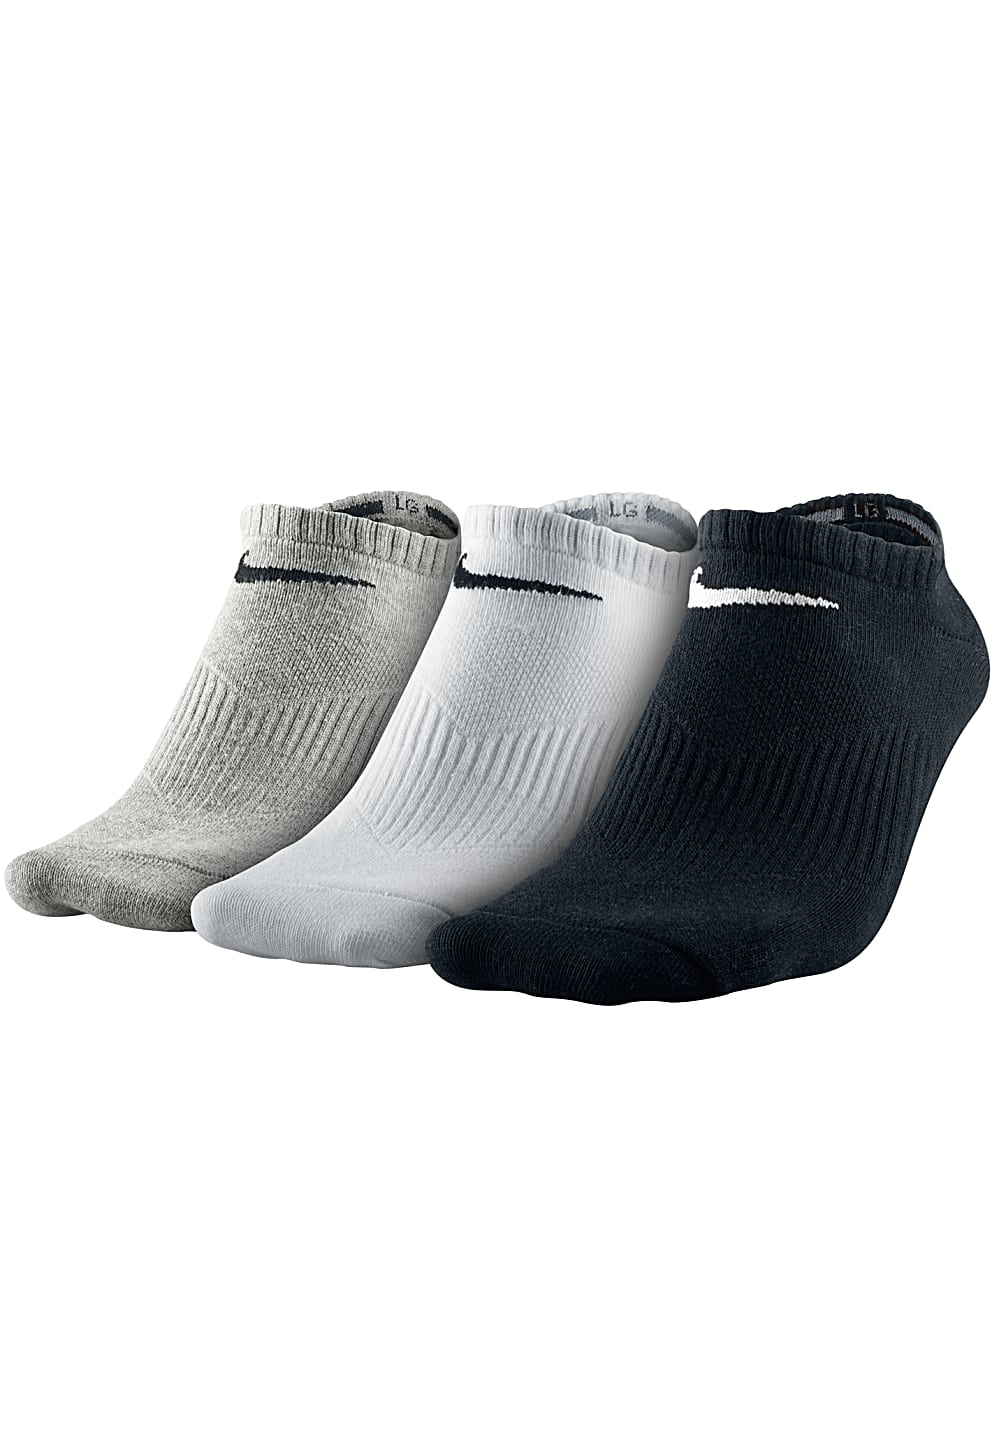 nike sportswear 3pack lightweight no show socken. Black Bedroom Furniture Sets. Home Design Ideas